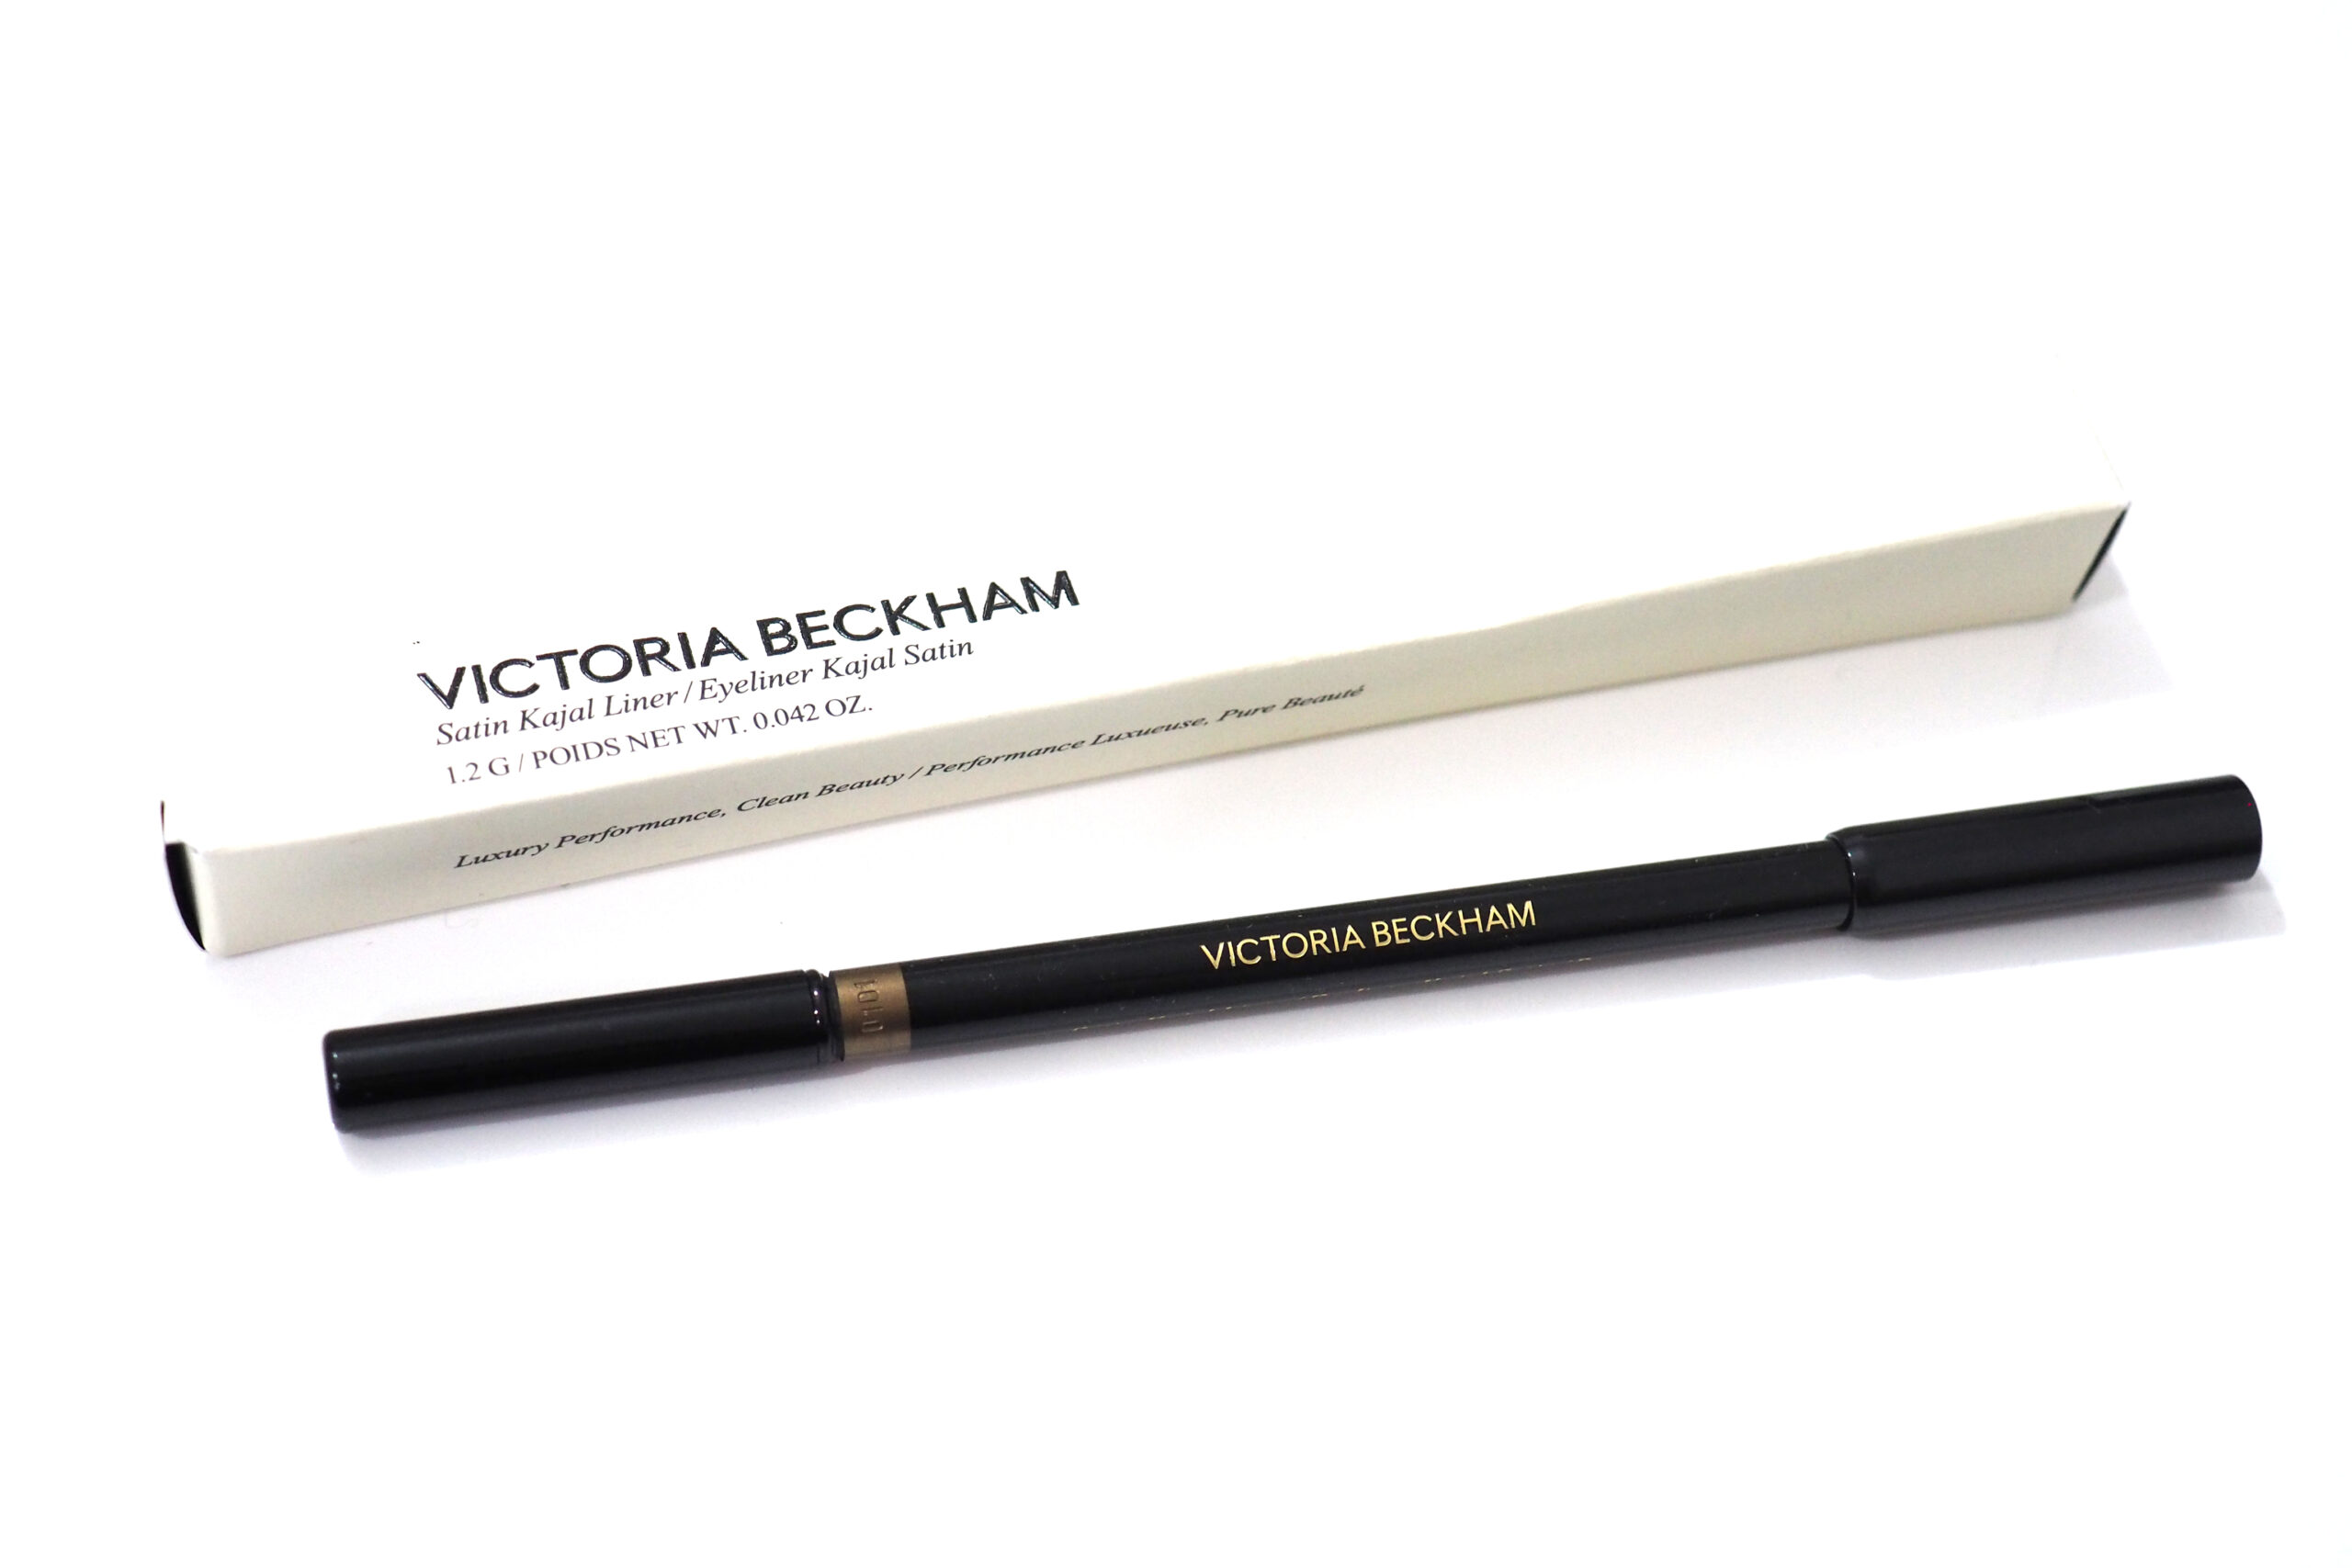 Victoria Beckham Beauty Satin Kajal Liner Review and Swatches